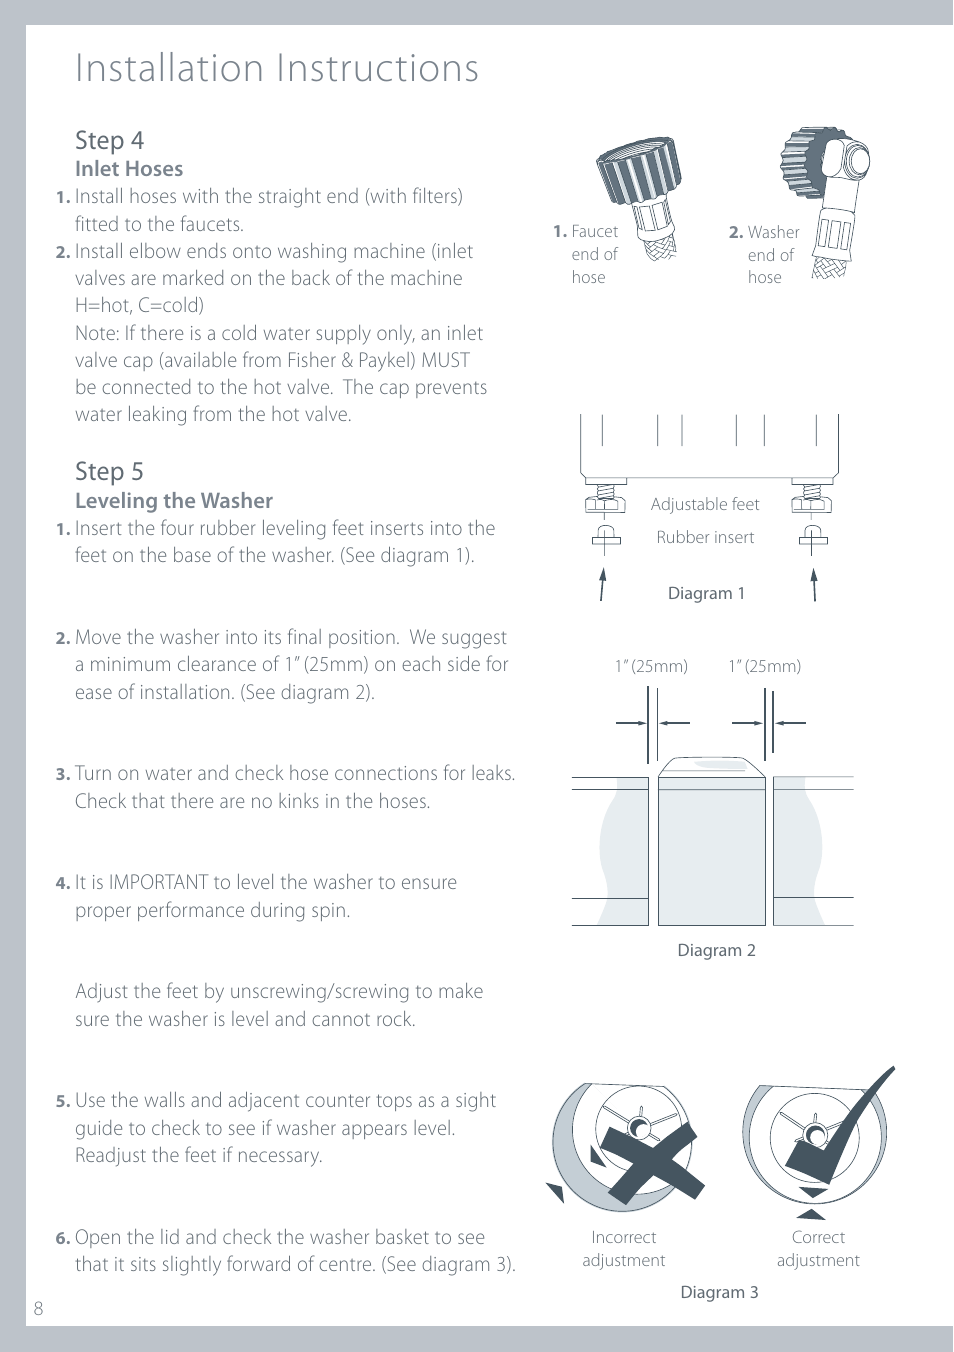 hight resolution of installation instructions step 4 step 5 fisher paykel iwl12 manuel d utilisation page 8 80